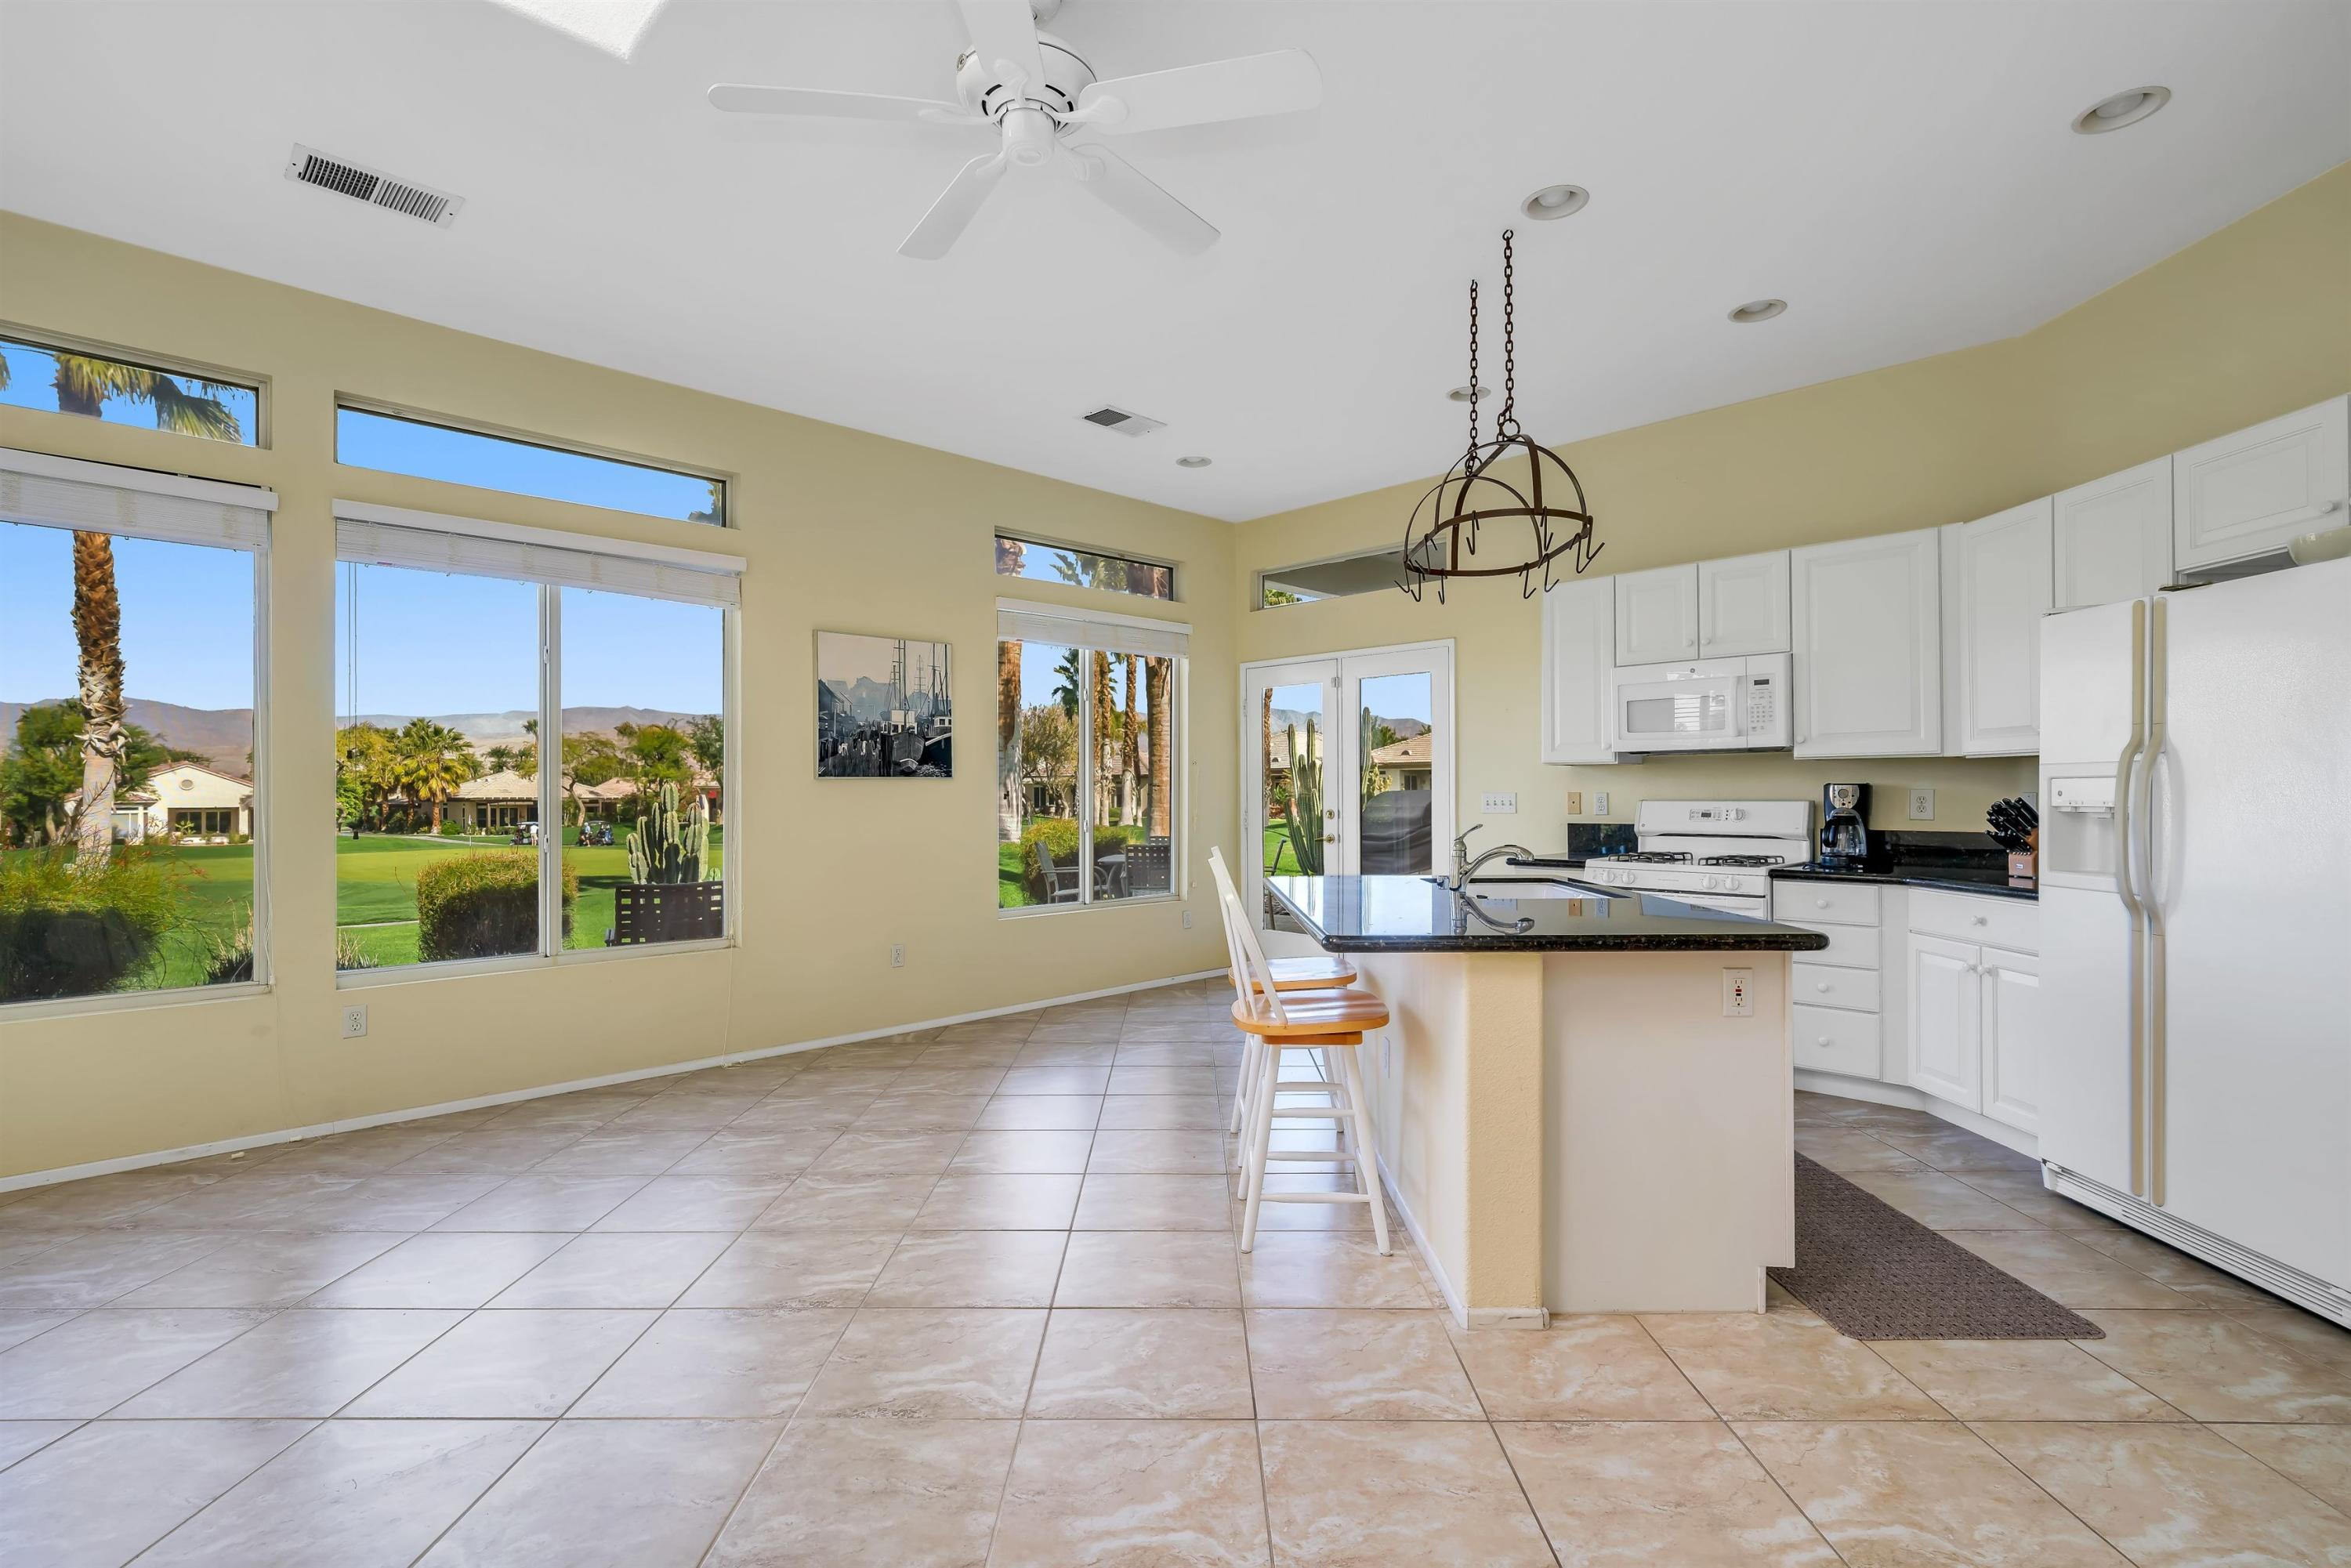 This wonderful home in pristine condition is located in the exclusive 55+ community of Heritage Palms Country Club, overlooking the 3rd fairway, with mountain views. Open floor plan includes 2 bedrooms, 2 baths. Master bedroom has his/hers walk-in closets. Community has Guarded gate entrance, Club house, paddle ball, tennis, pool + indoor pool, spa, gym w/steam room, billiards, cards, library, Dinning, bar. All inclusive plus cable with HBO and internet. MUST See.